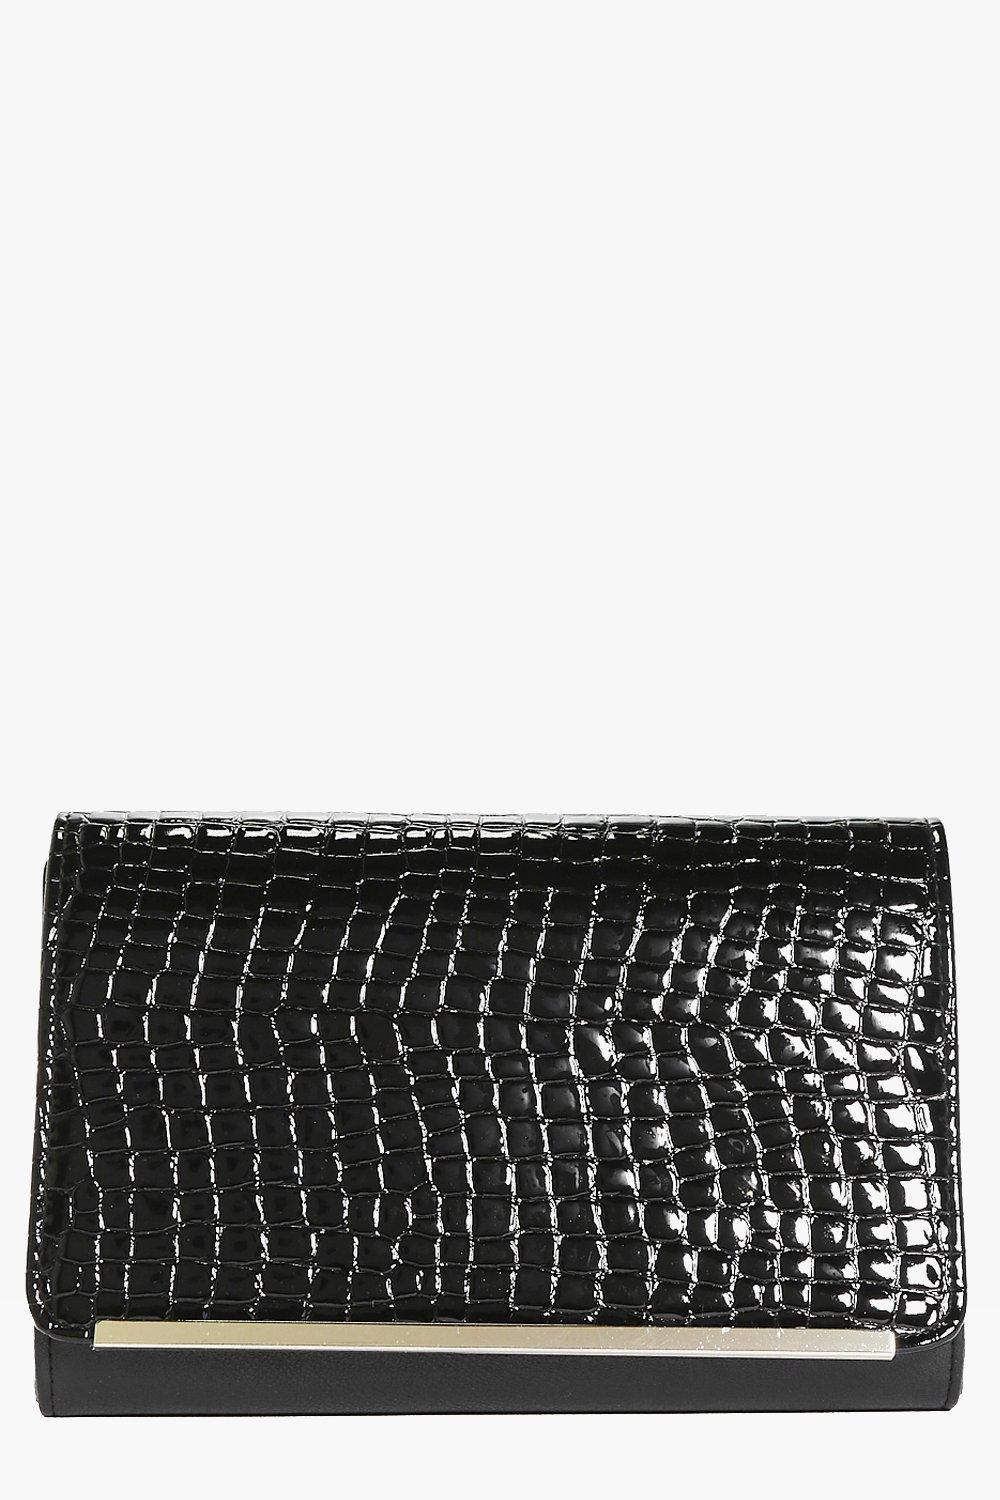 Isla Mock Croc Metal Trim Clutch Bag